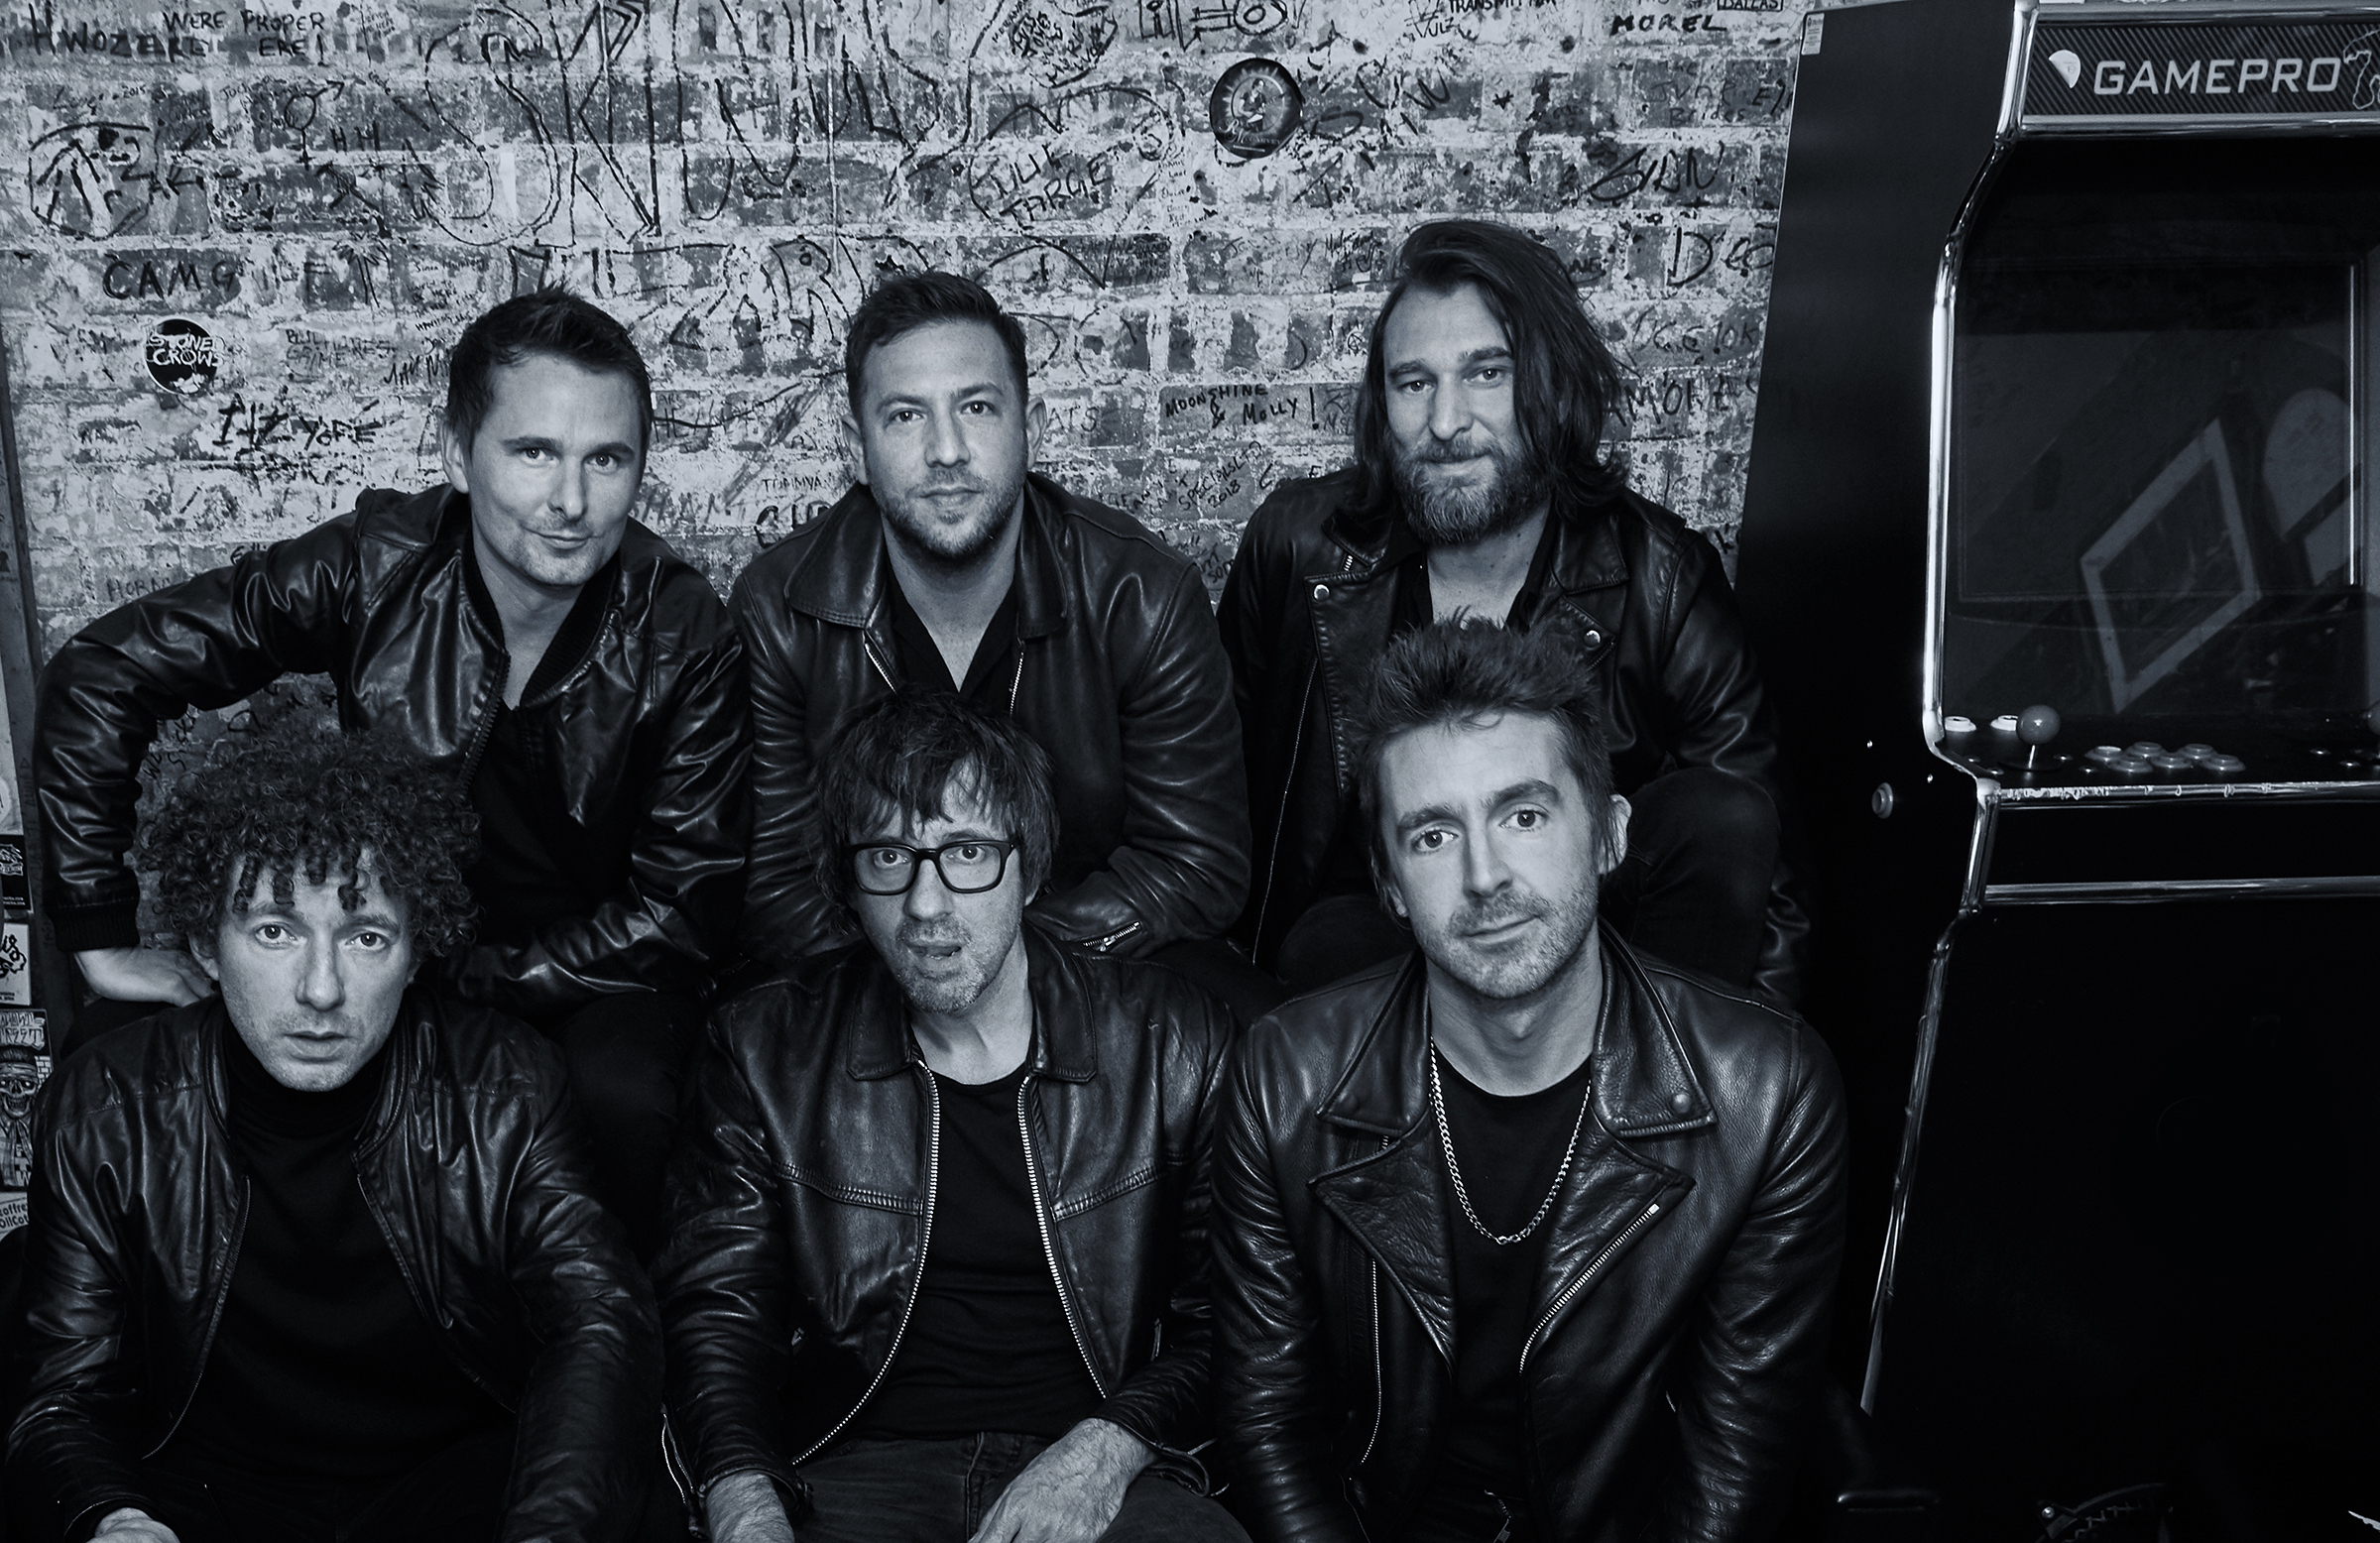 THE JADED HEARTS CLUB release debut track 'Nobody But Me' with Miles Kane on vocals